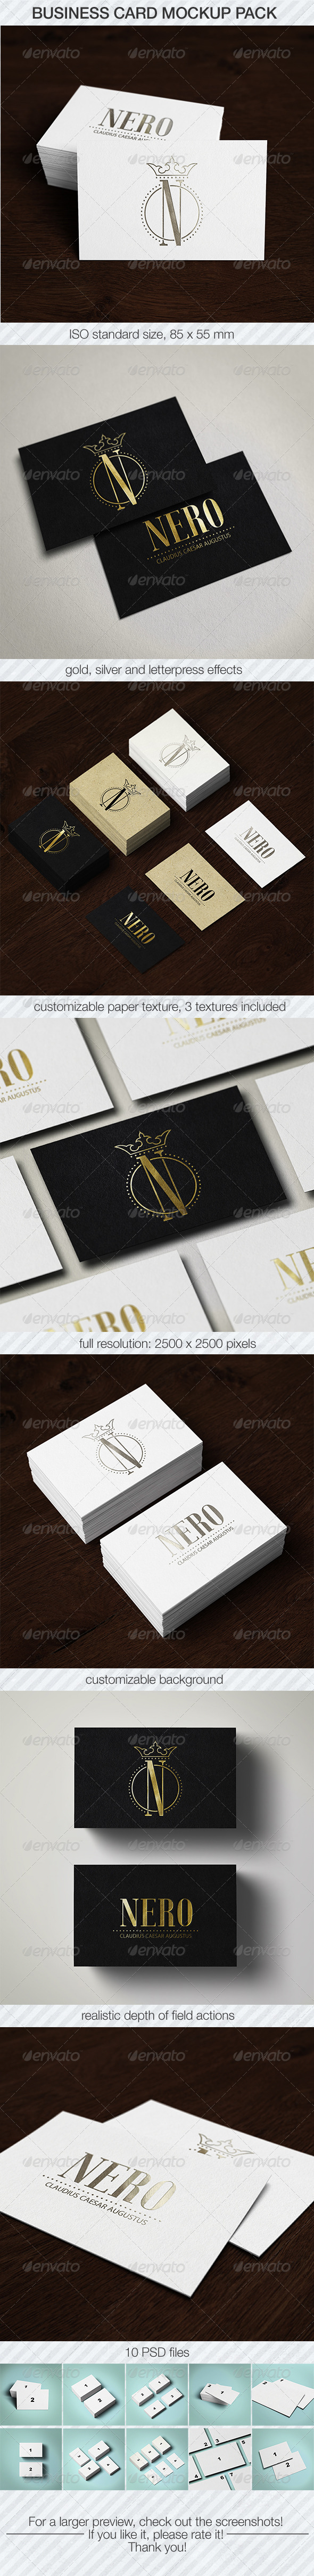 GraphicRiver Business Card Mockup Pack 6134608